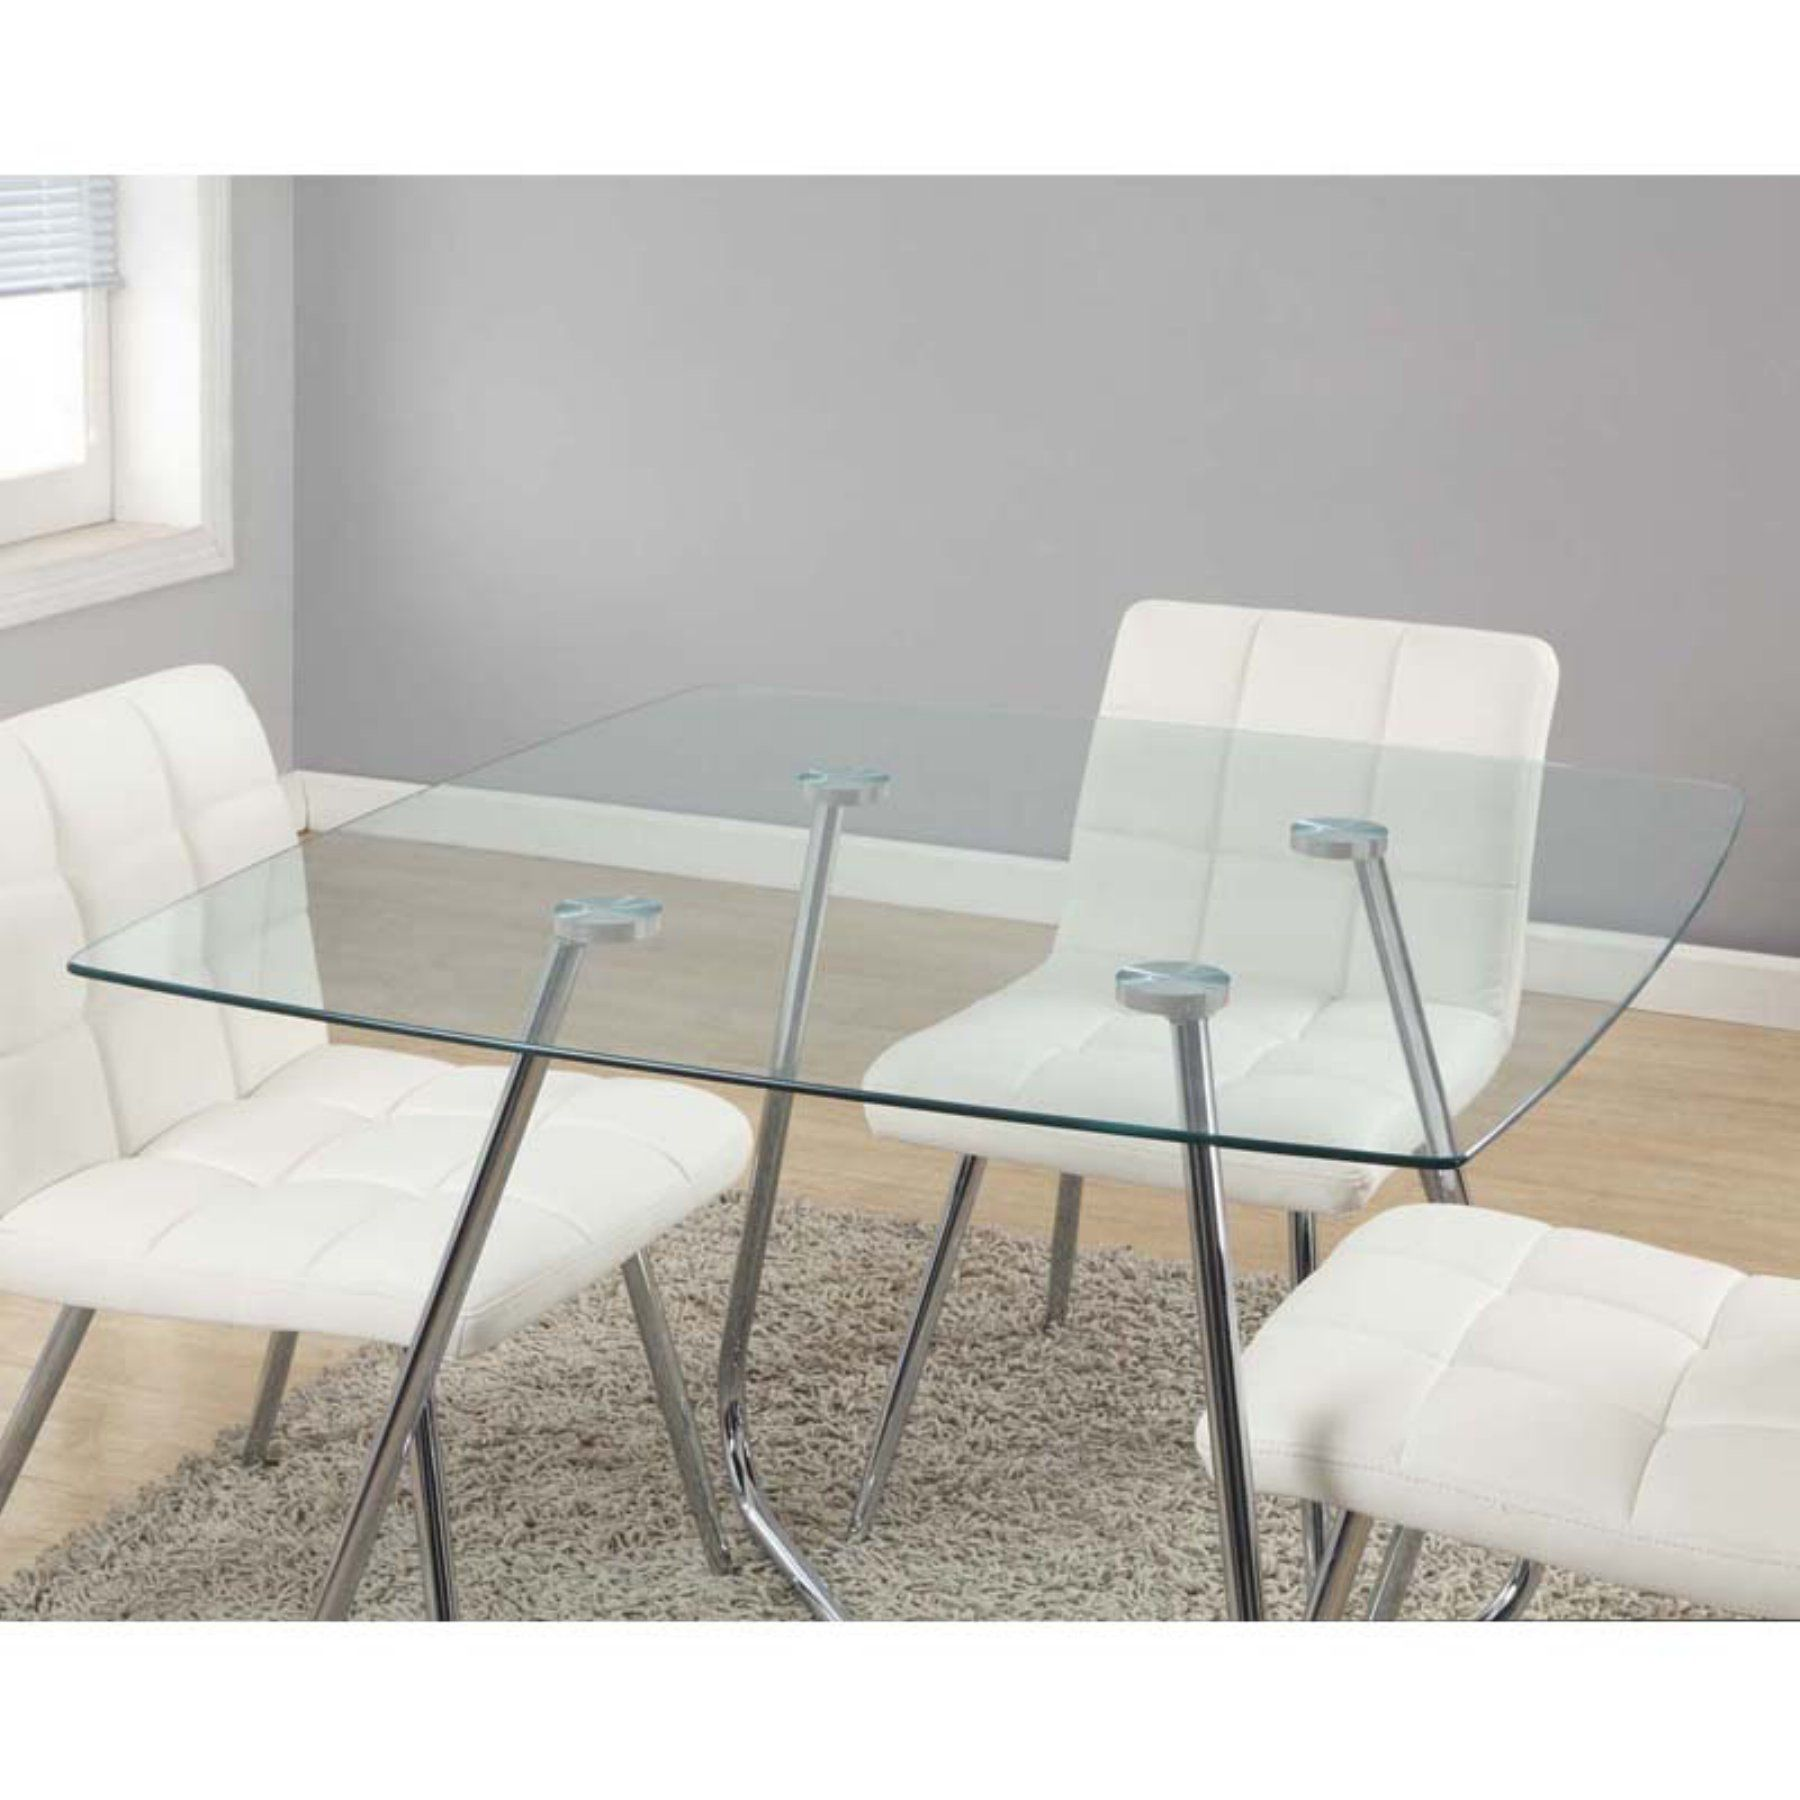 Monarch Hartly Chrome Metal & Tempered Glass Square Dining Table